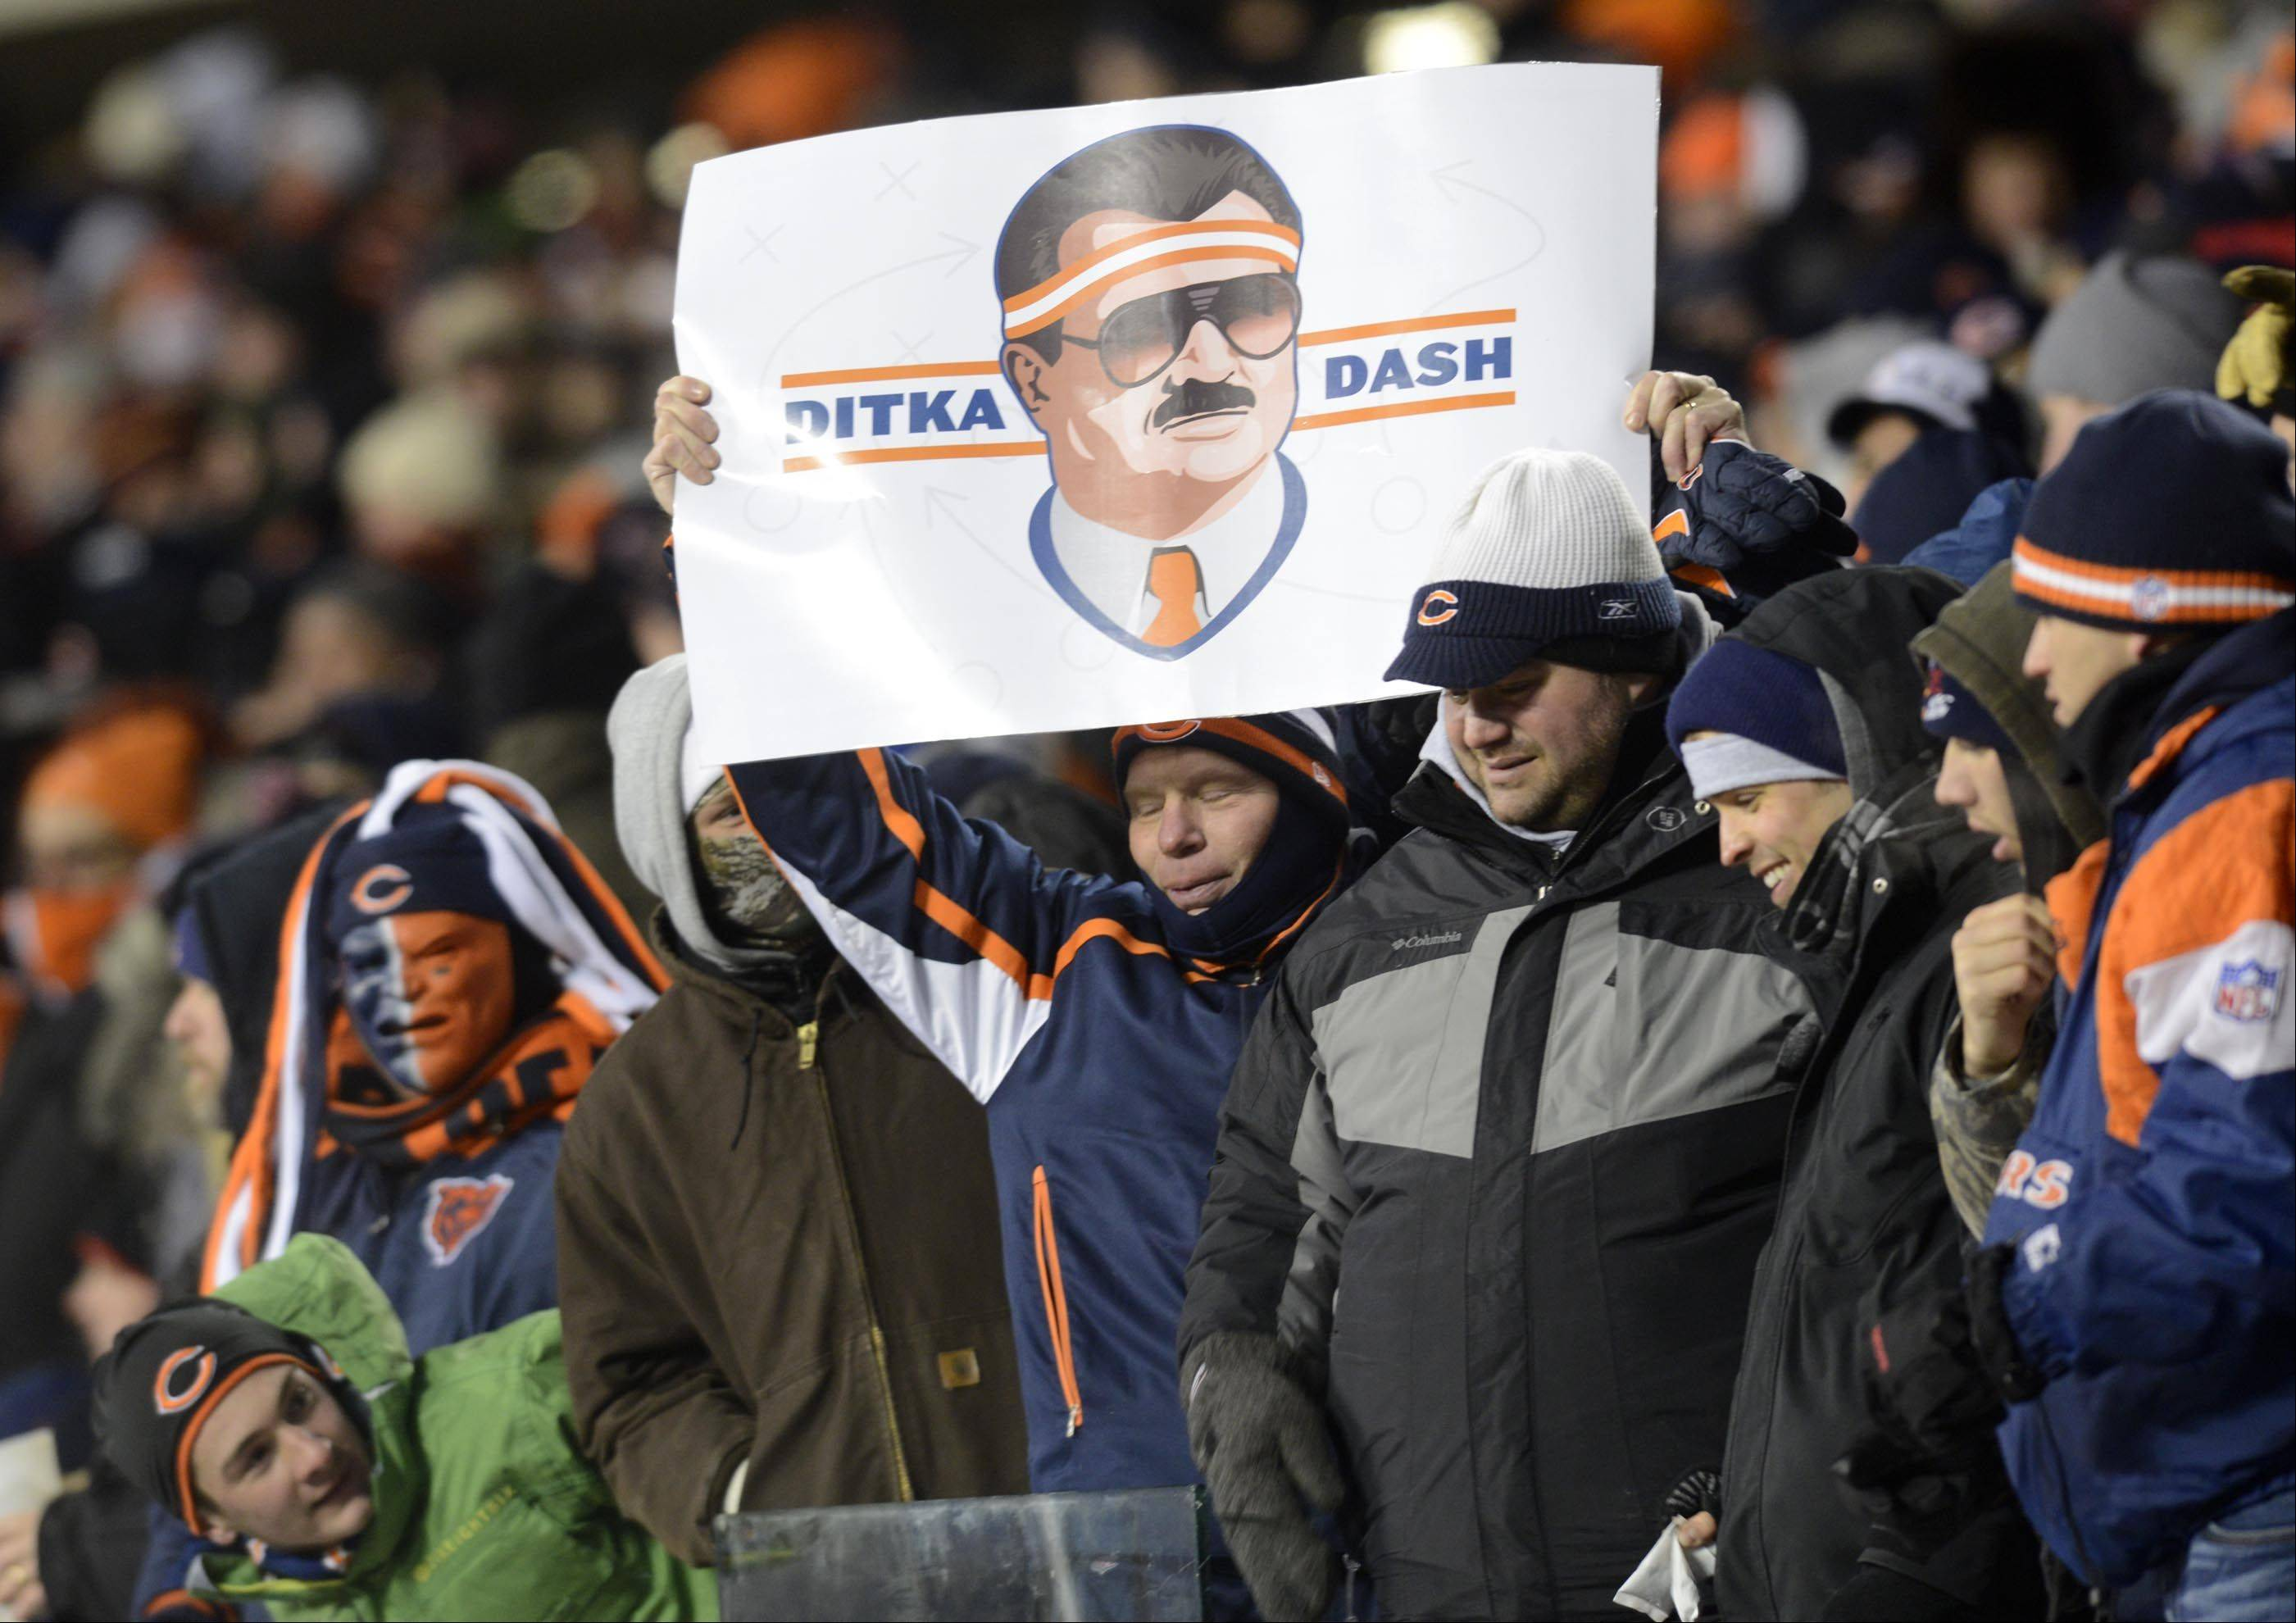 Fans celebrate former Chicago Bears coach Mike Ditka before his jersey retirement ceremony.